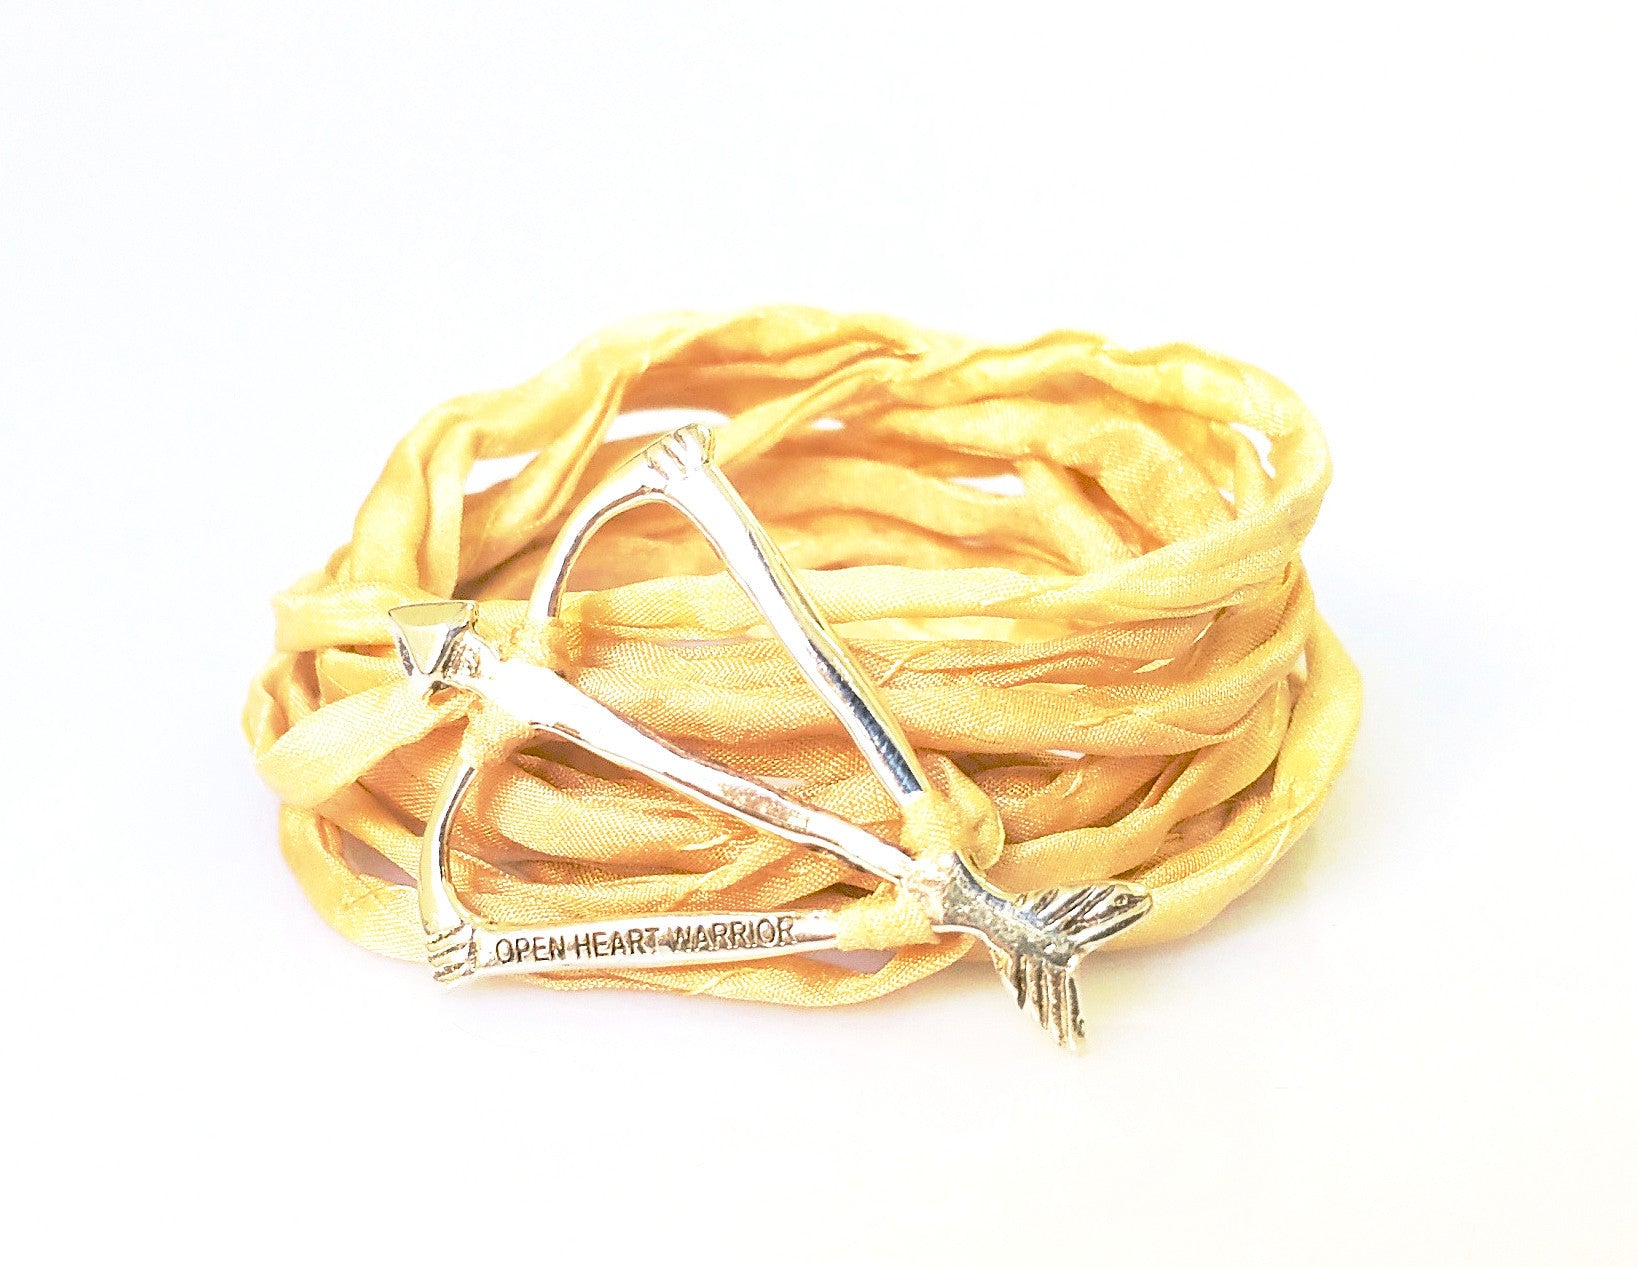 Open Heart Warrior Bow and Arrow Signature Natural Silk Wrap Bracelet